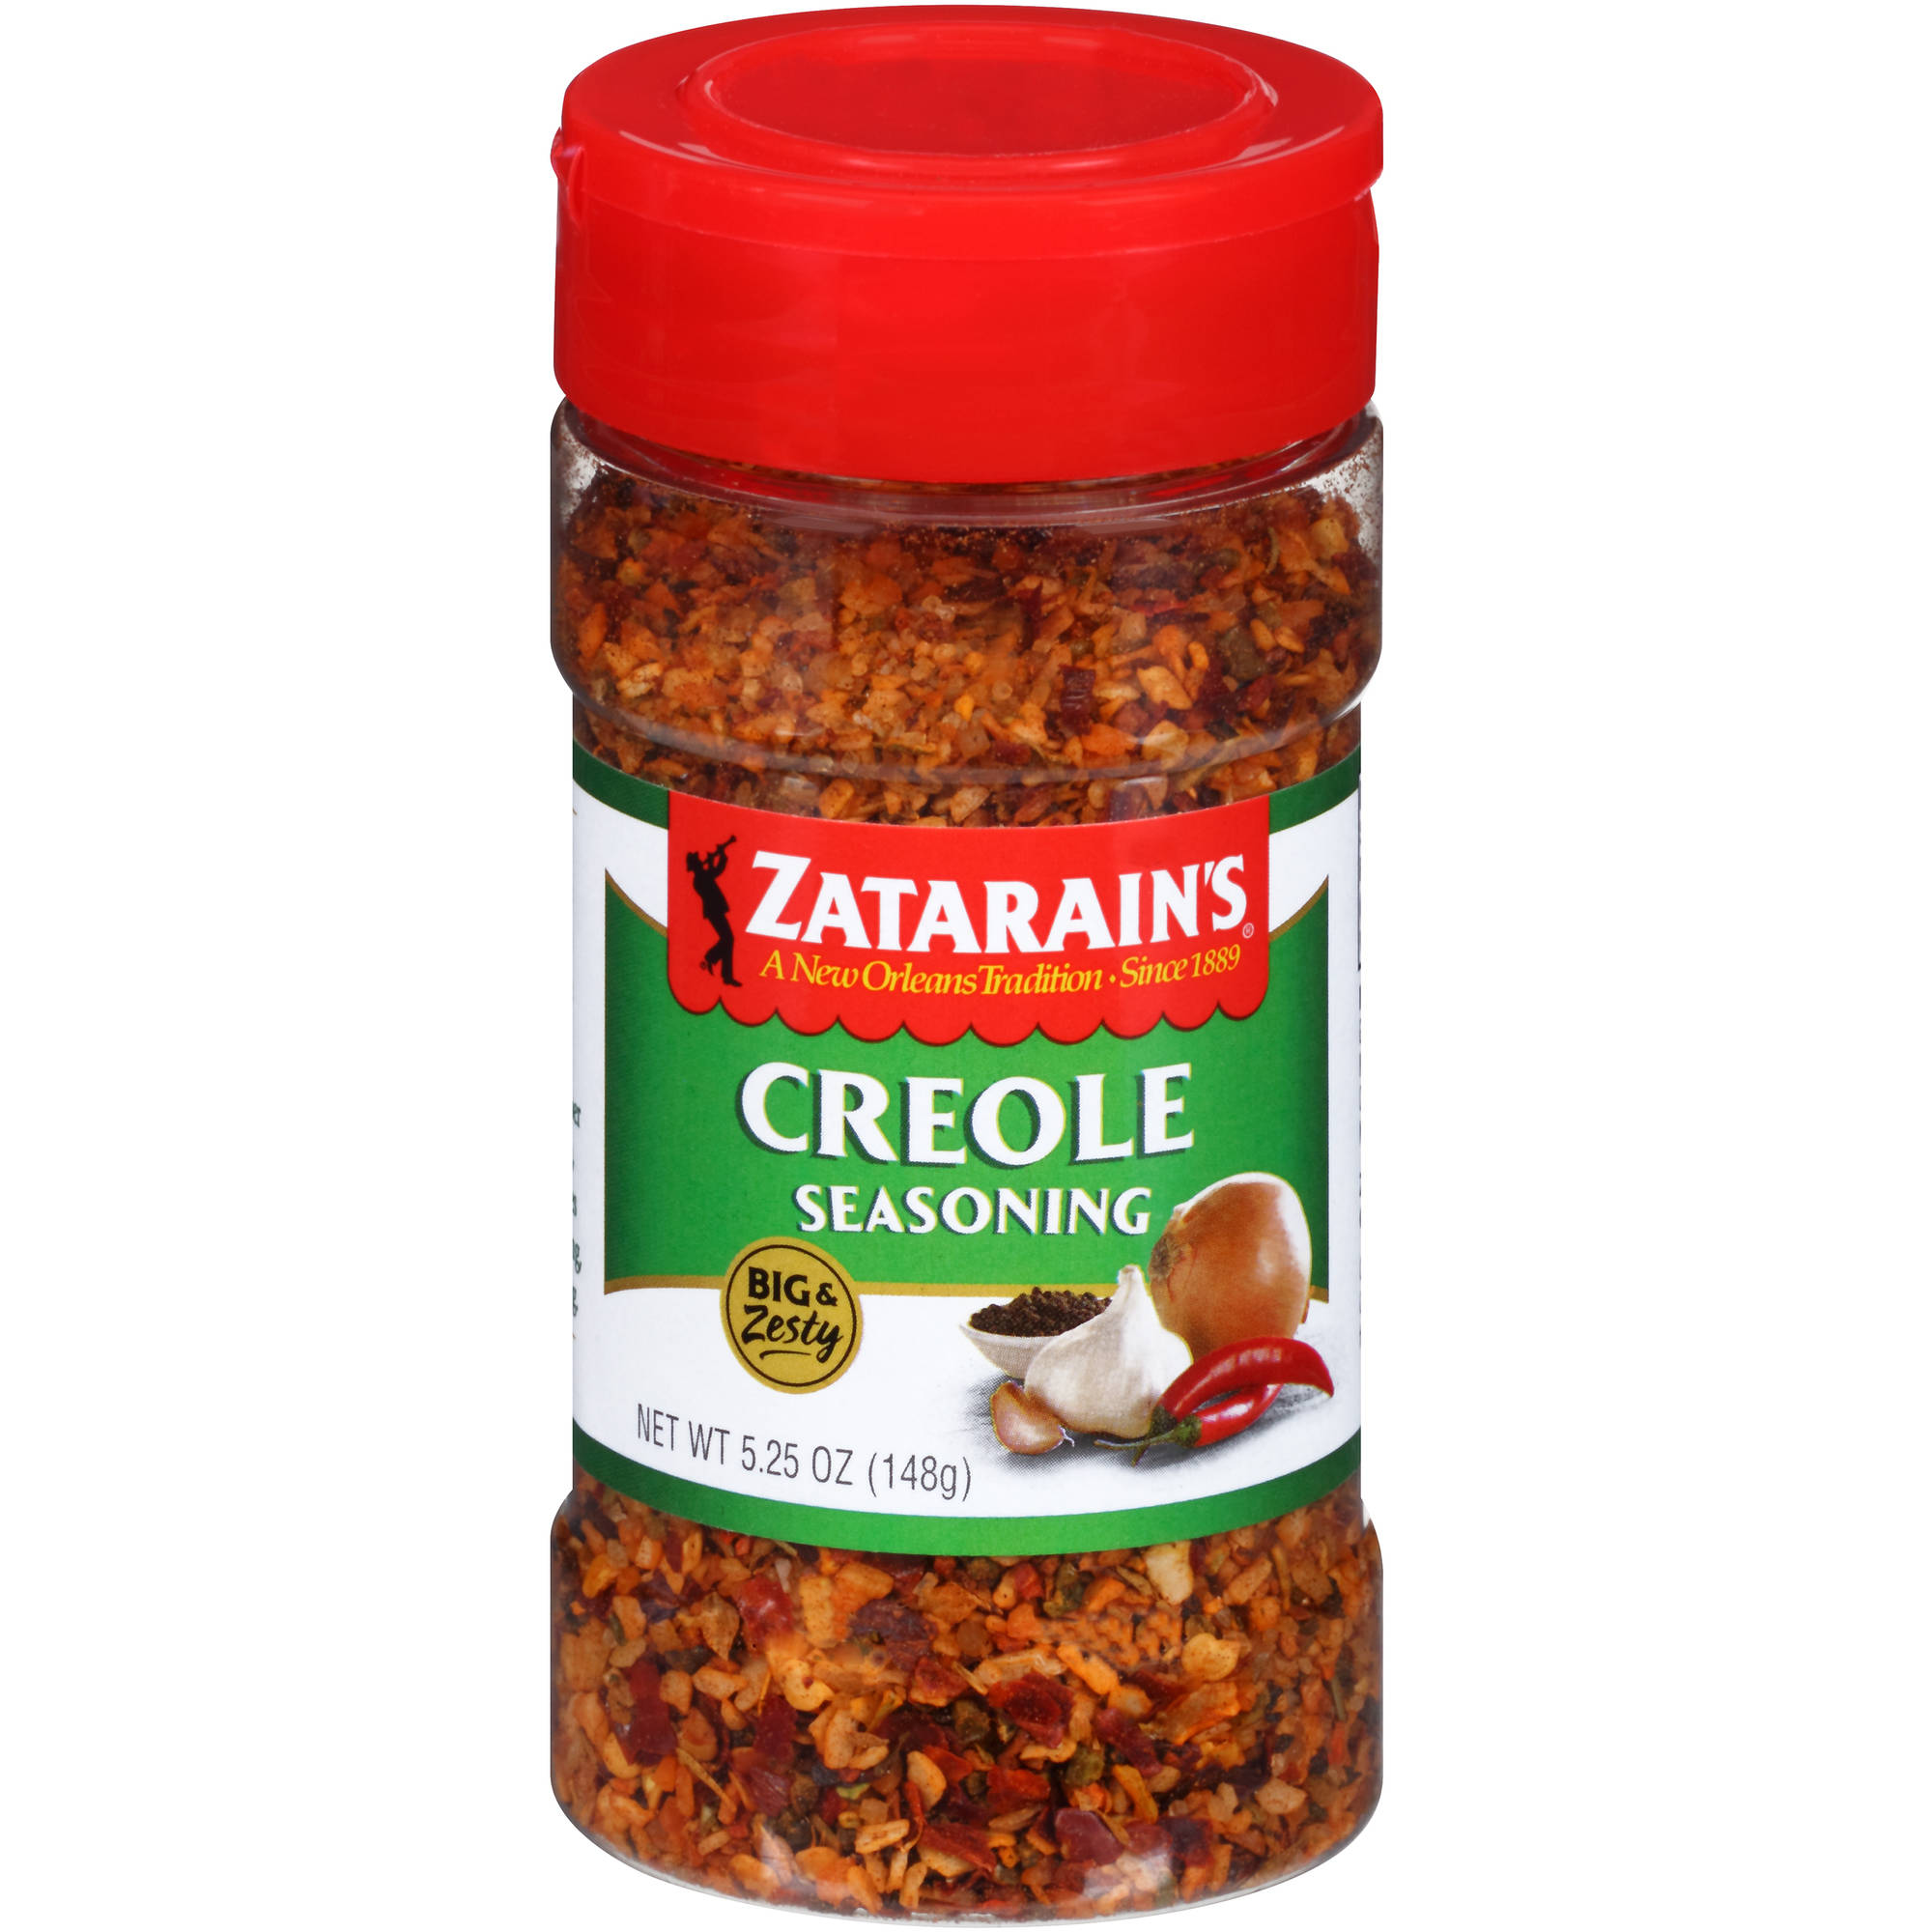 Zatarain's Original Big & Zesty Creole Seasoning, 5.25 oz